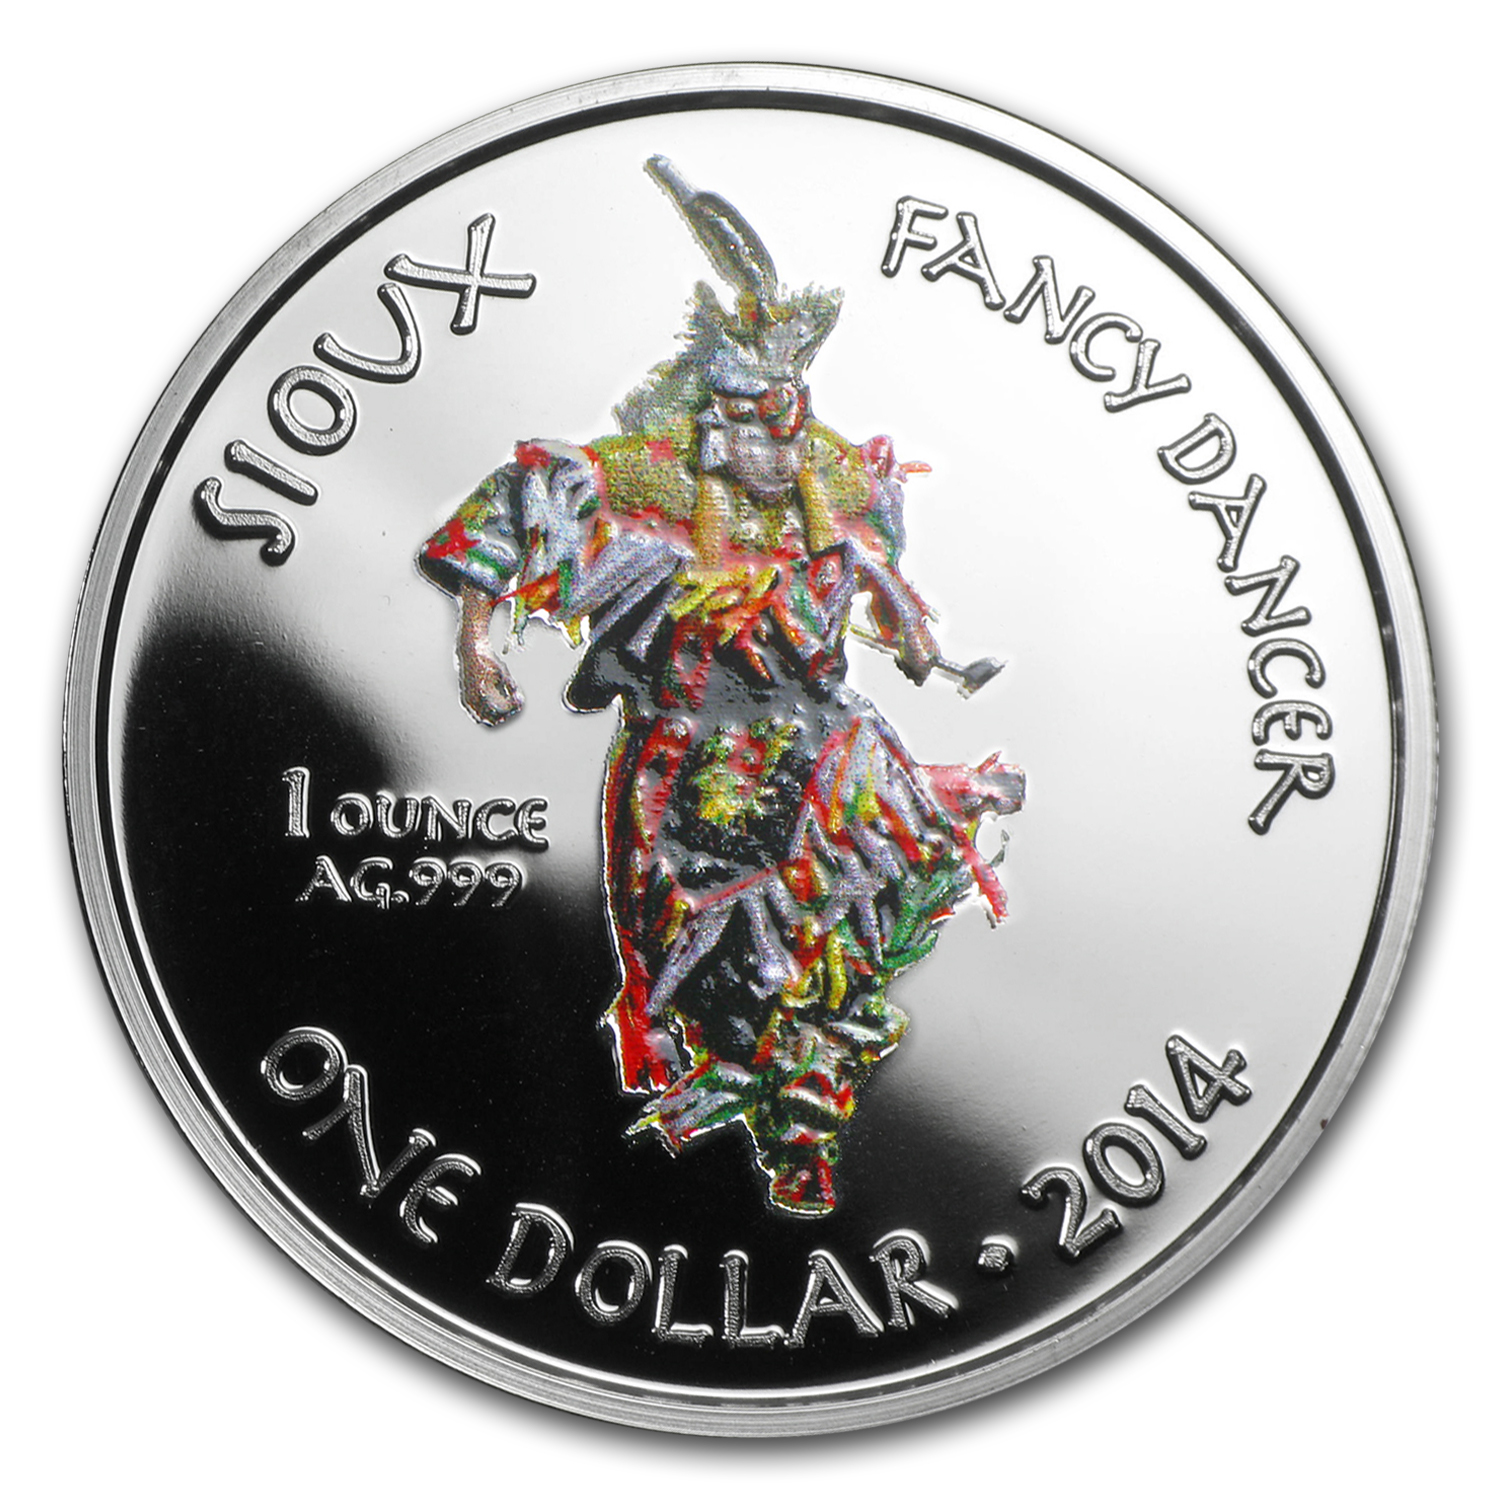 2014 1 oz Silver Proof Native American Mint $1 Fancy Dancer